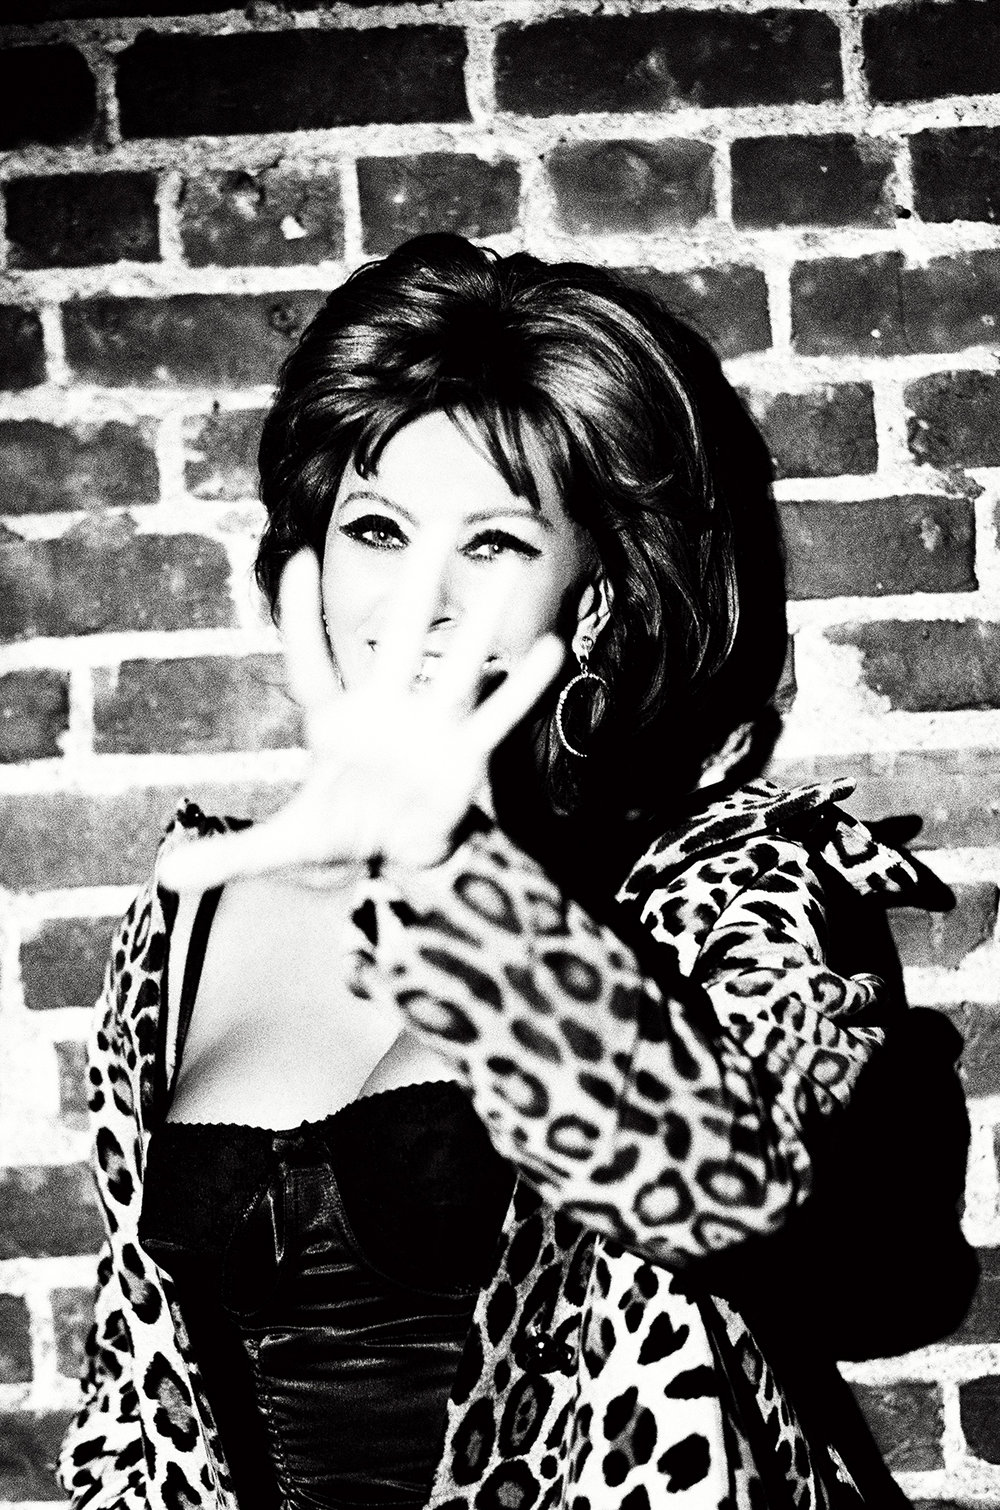 Ellen von Unwerth,  Sophia Loren , New York, 1996  Courtesy Staley-Wise Gallery